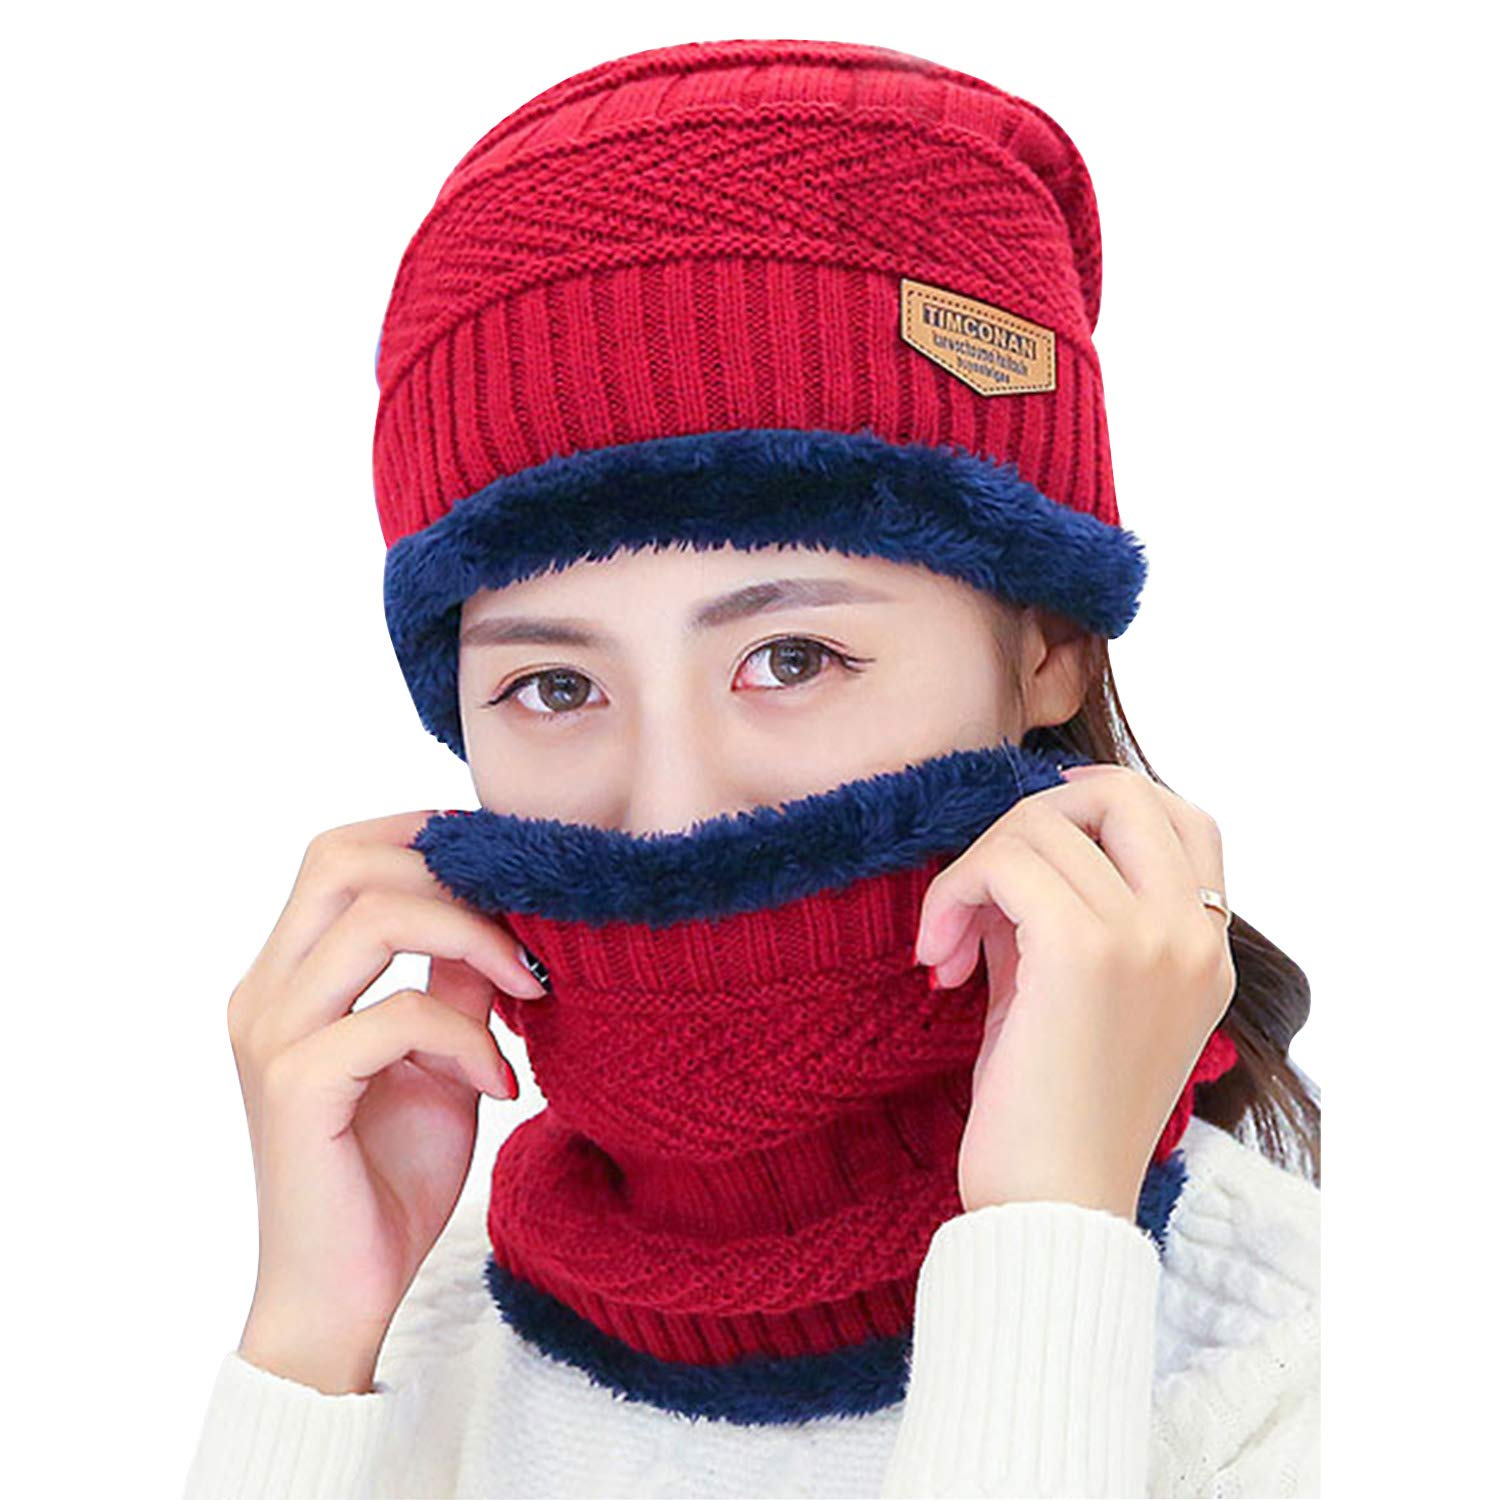 MOACC Winter Beanie Hat and Warm Scarf Set Thick Knit Skull Cap Warm Snow Ski Skull CapFleece Lined Scarf Outdoors Hat Unisex Use for Skiing Snowboarding Motorcycling Snow Climing (Red)